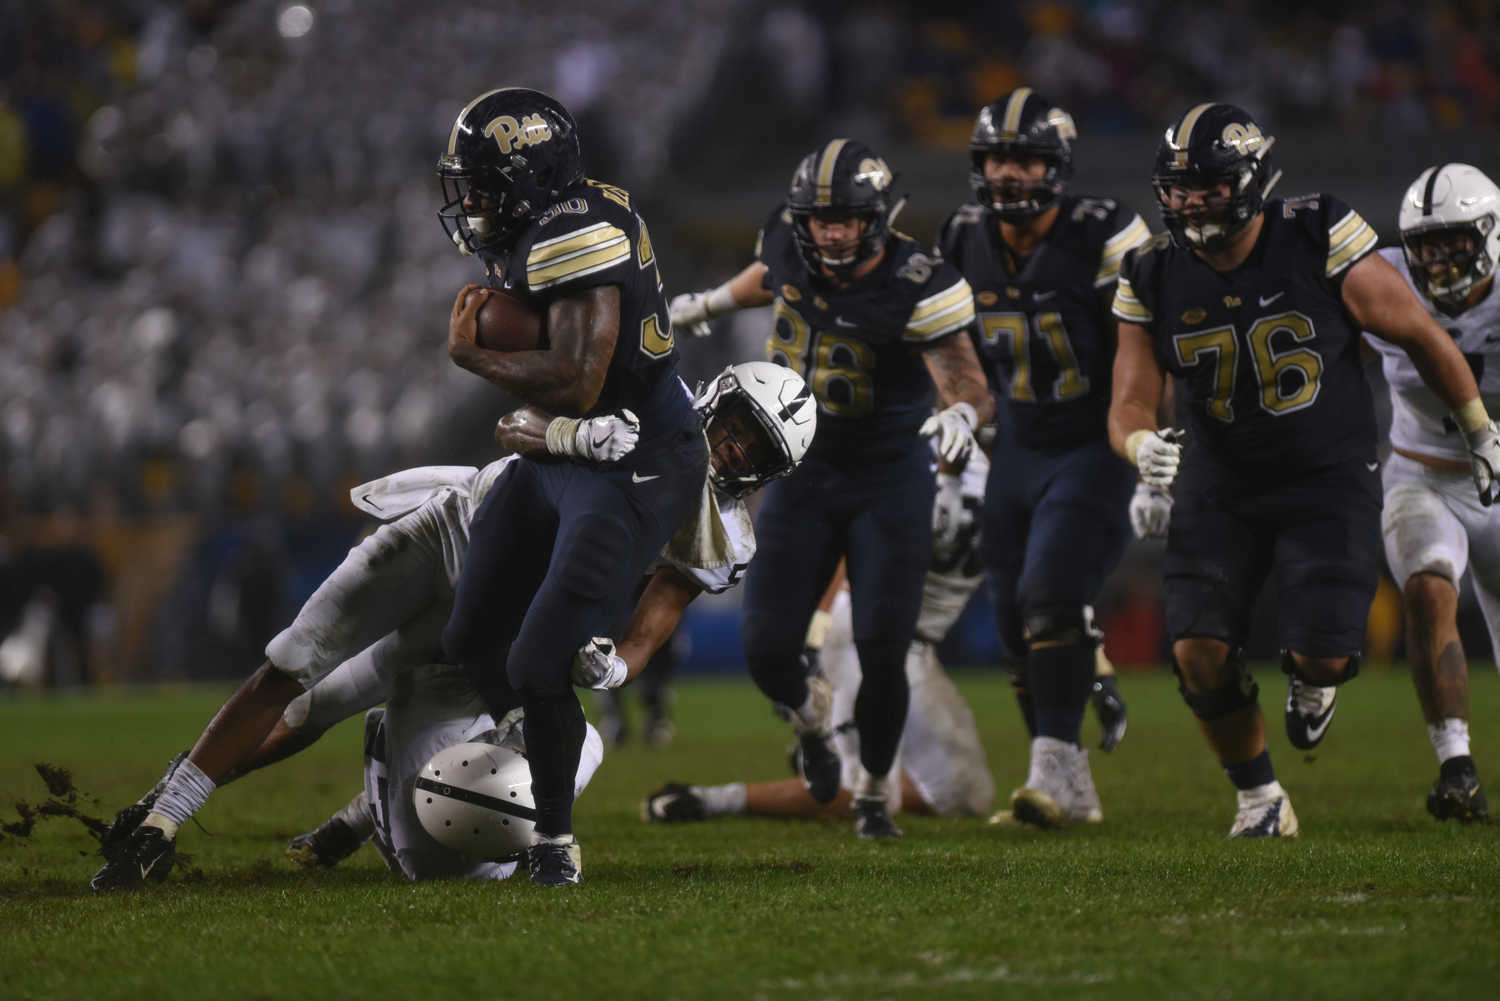 Redshirt senior running back Qadree Ollison (30) completed Pitt's only successful touchdown at the Panther's 51-6 loss to Penn State Saturday evening. (Photo by Anna Bongardino | Visual Editor)